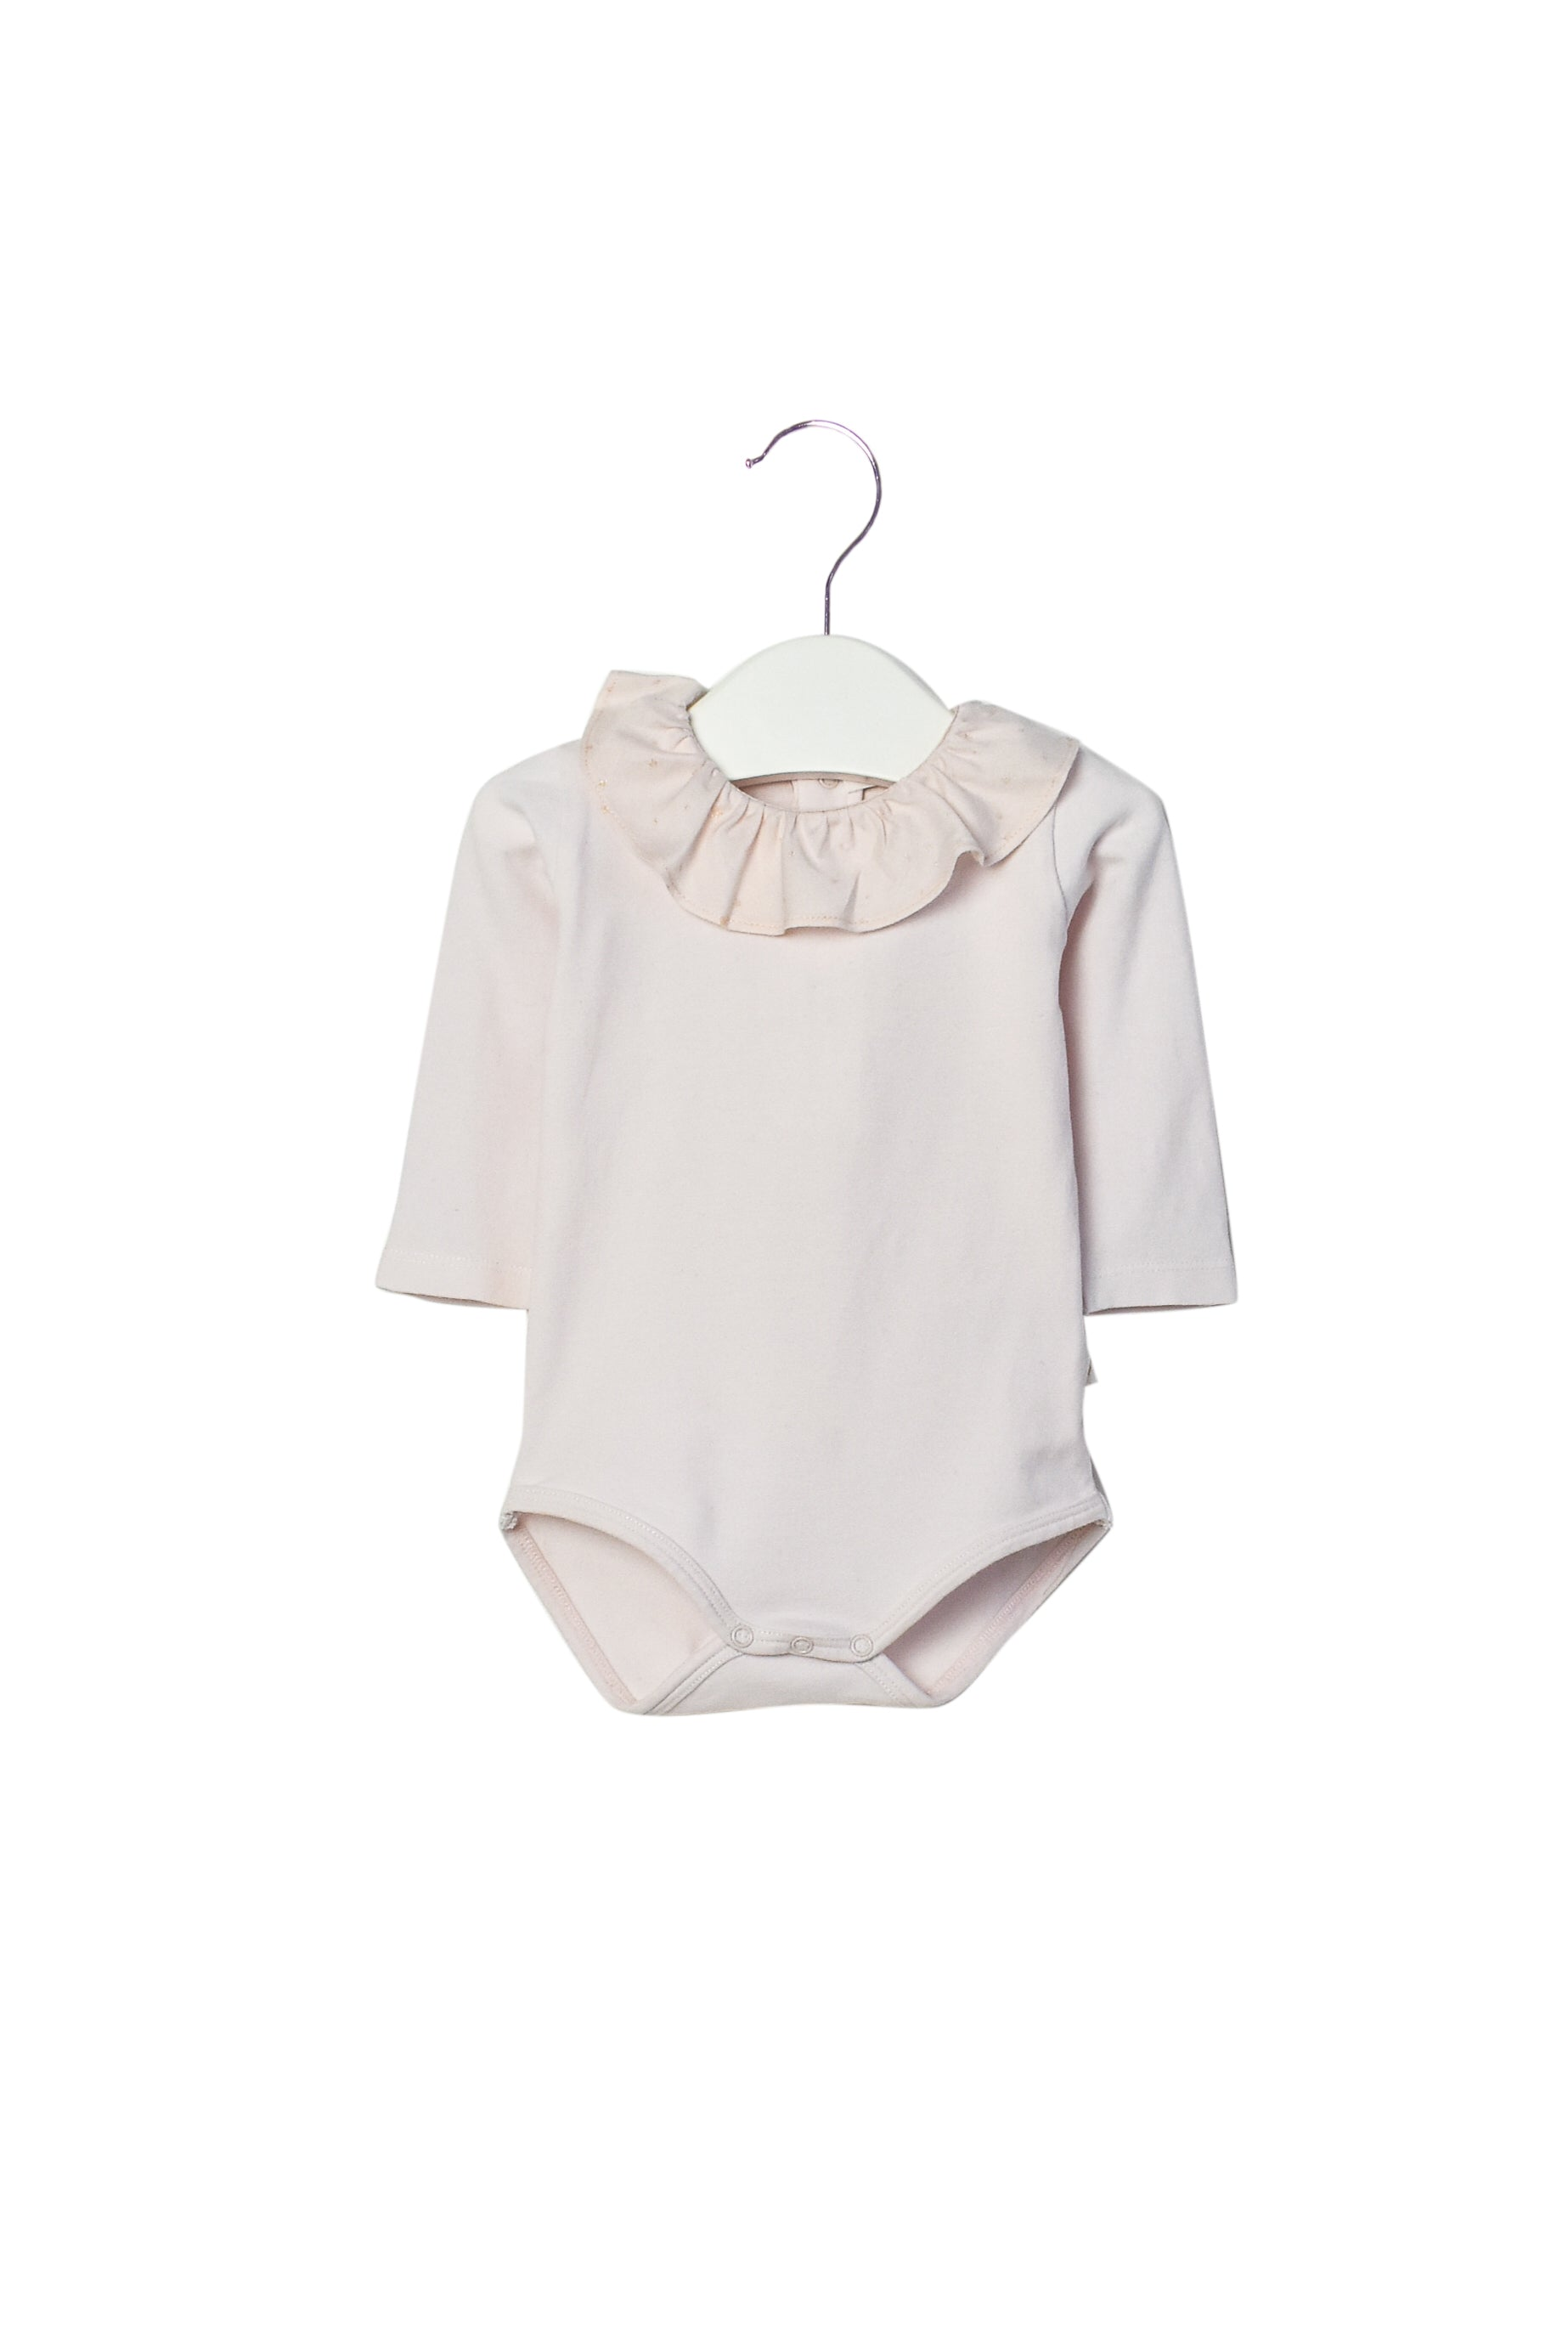 10006885 Les Enfantines Baby~Bodysuit 6M at Retykle